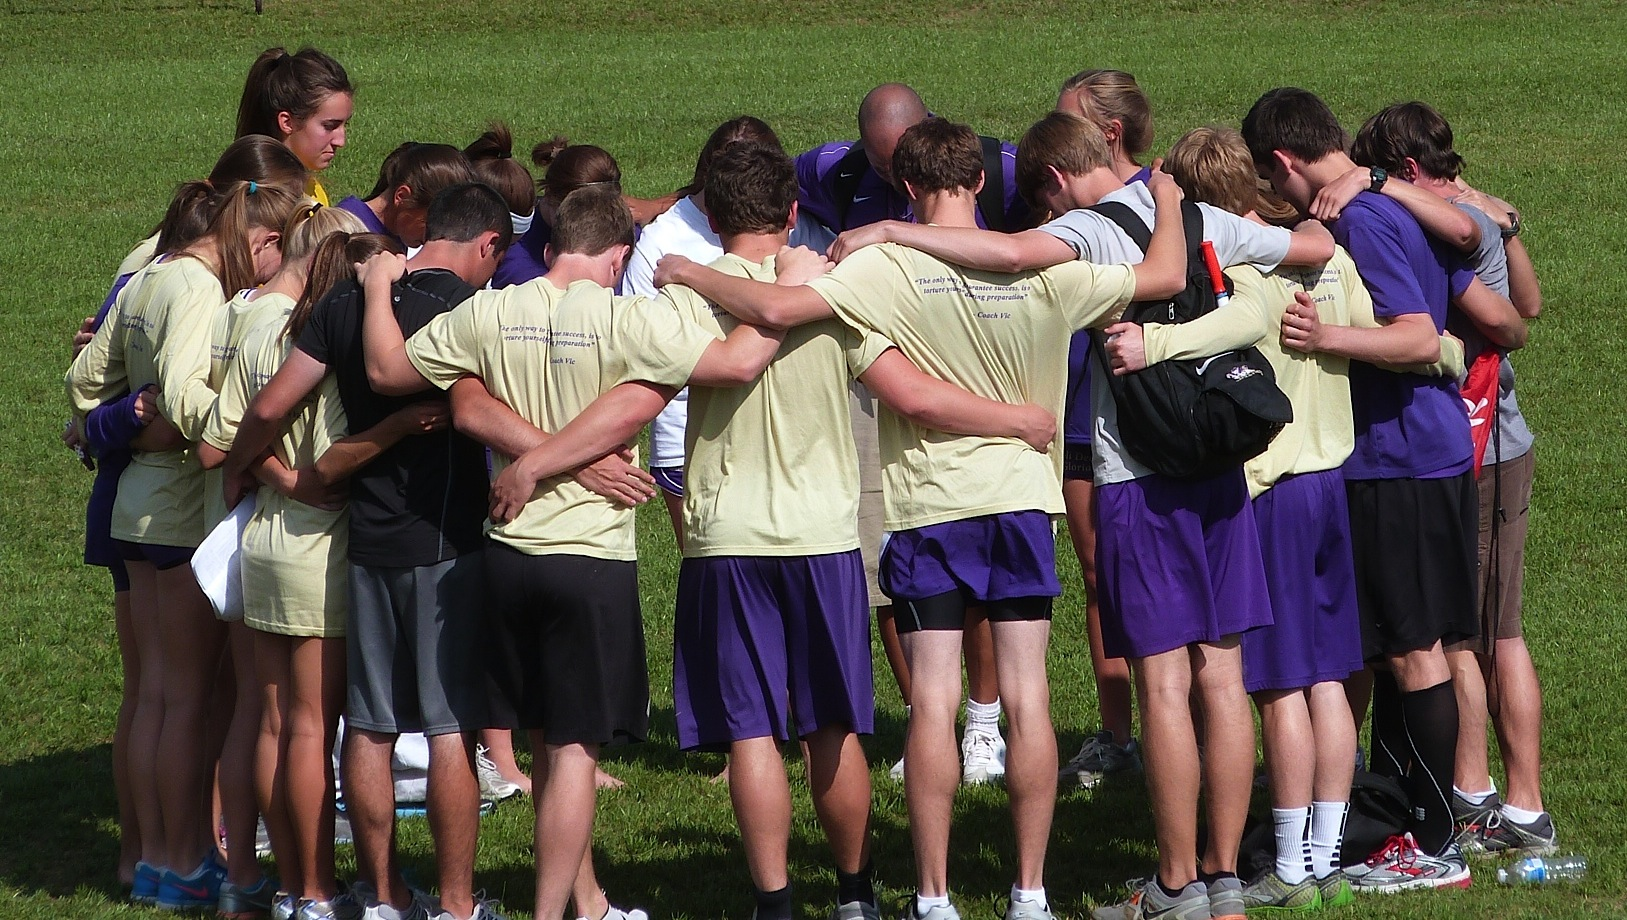 Track Team 2012 - praying at sectional - Track Team 2012 - praying